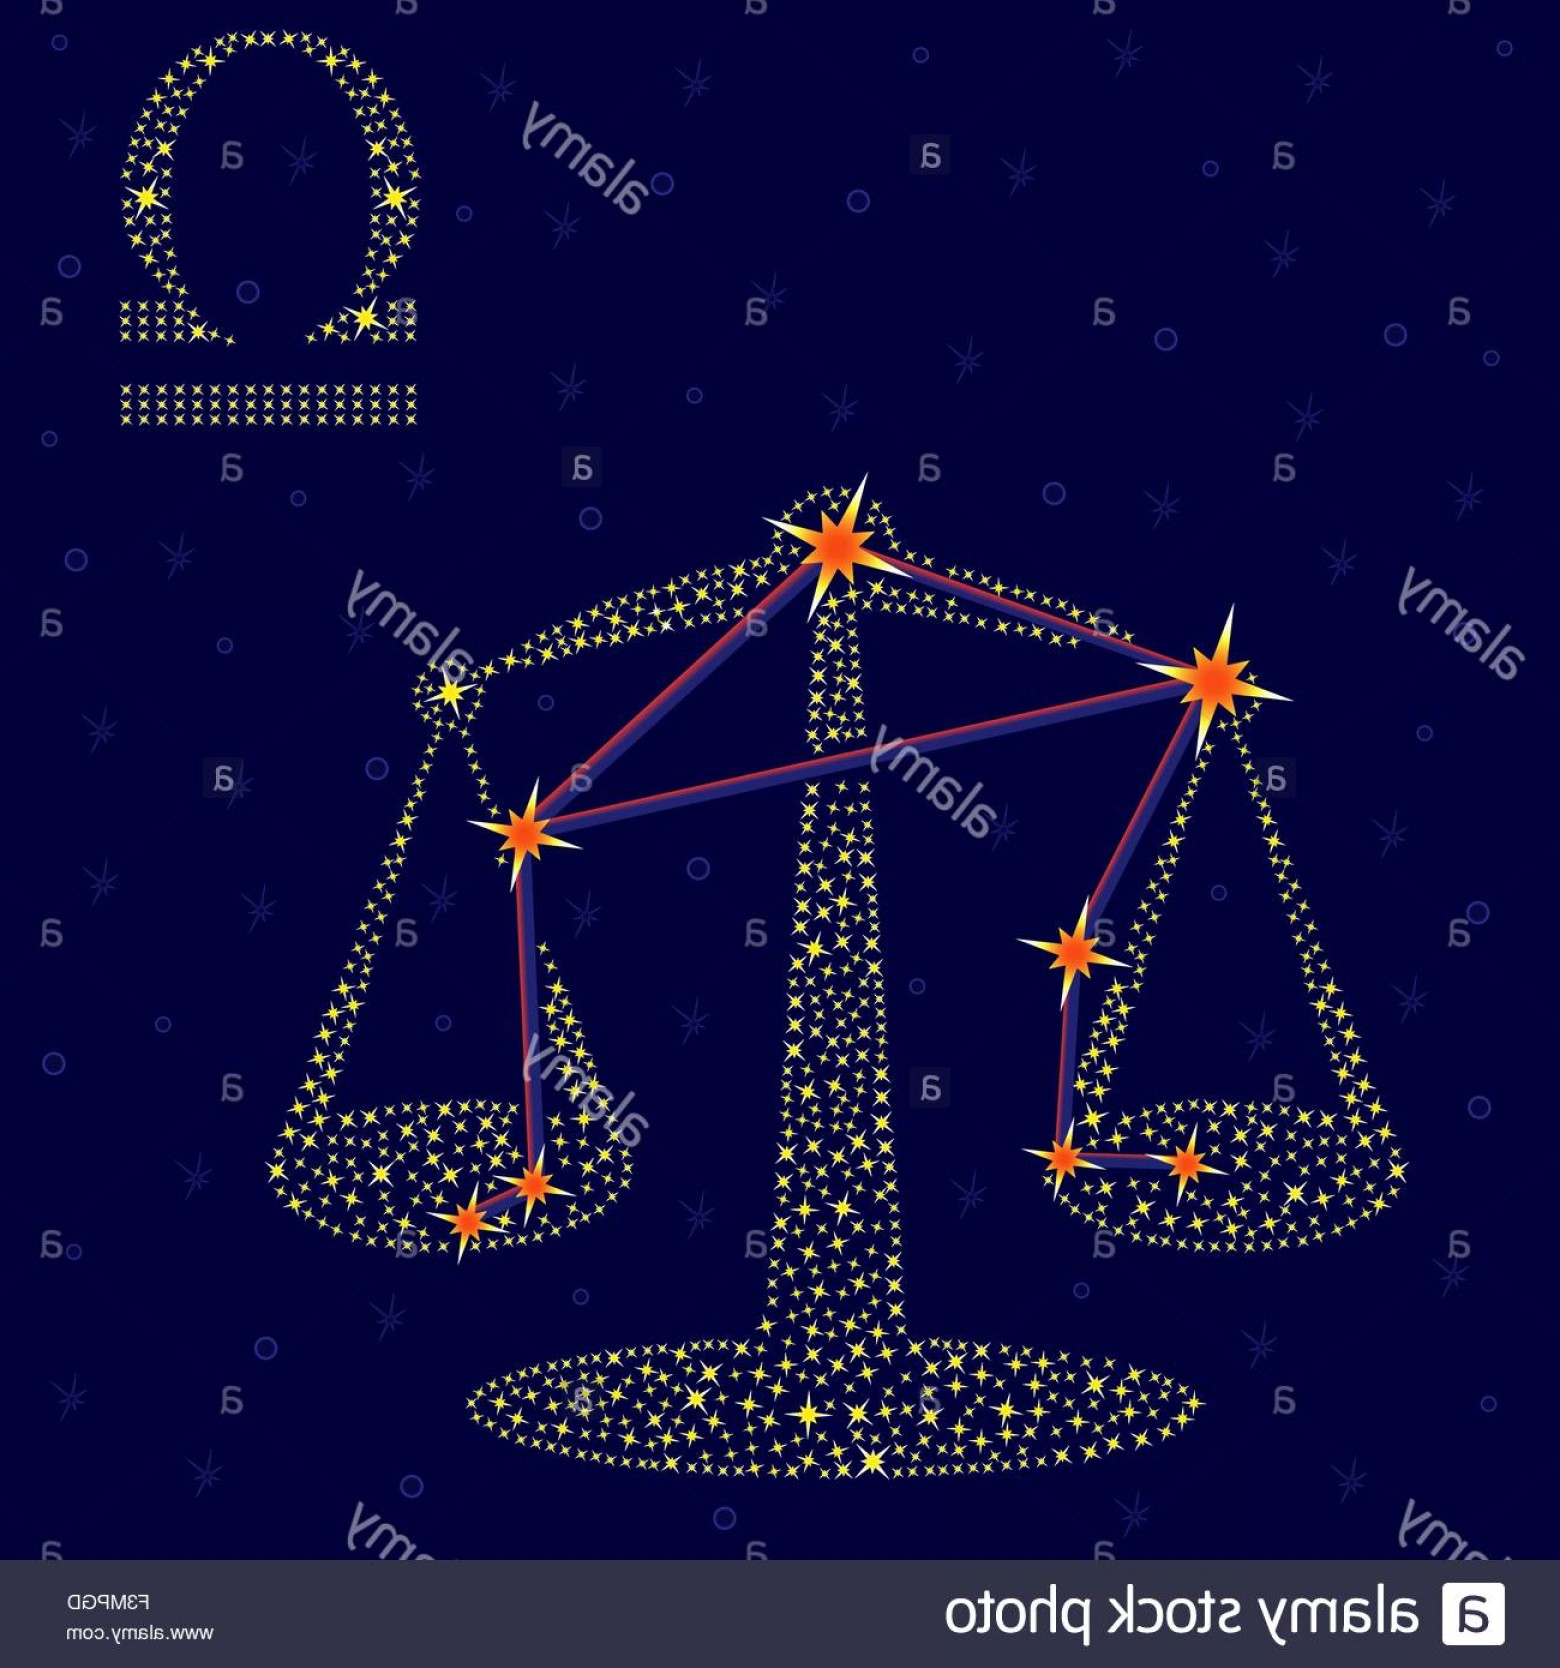 October Zodiac Constellation Vector: Stock Photo Zodiac Sign Libra On A Background Of The Starry Sky With The Scheme